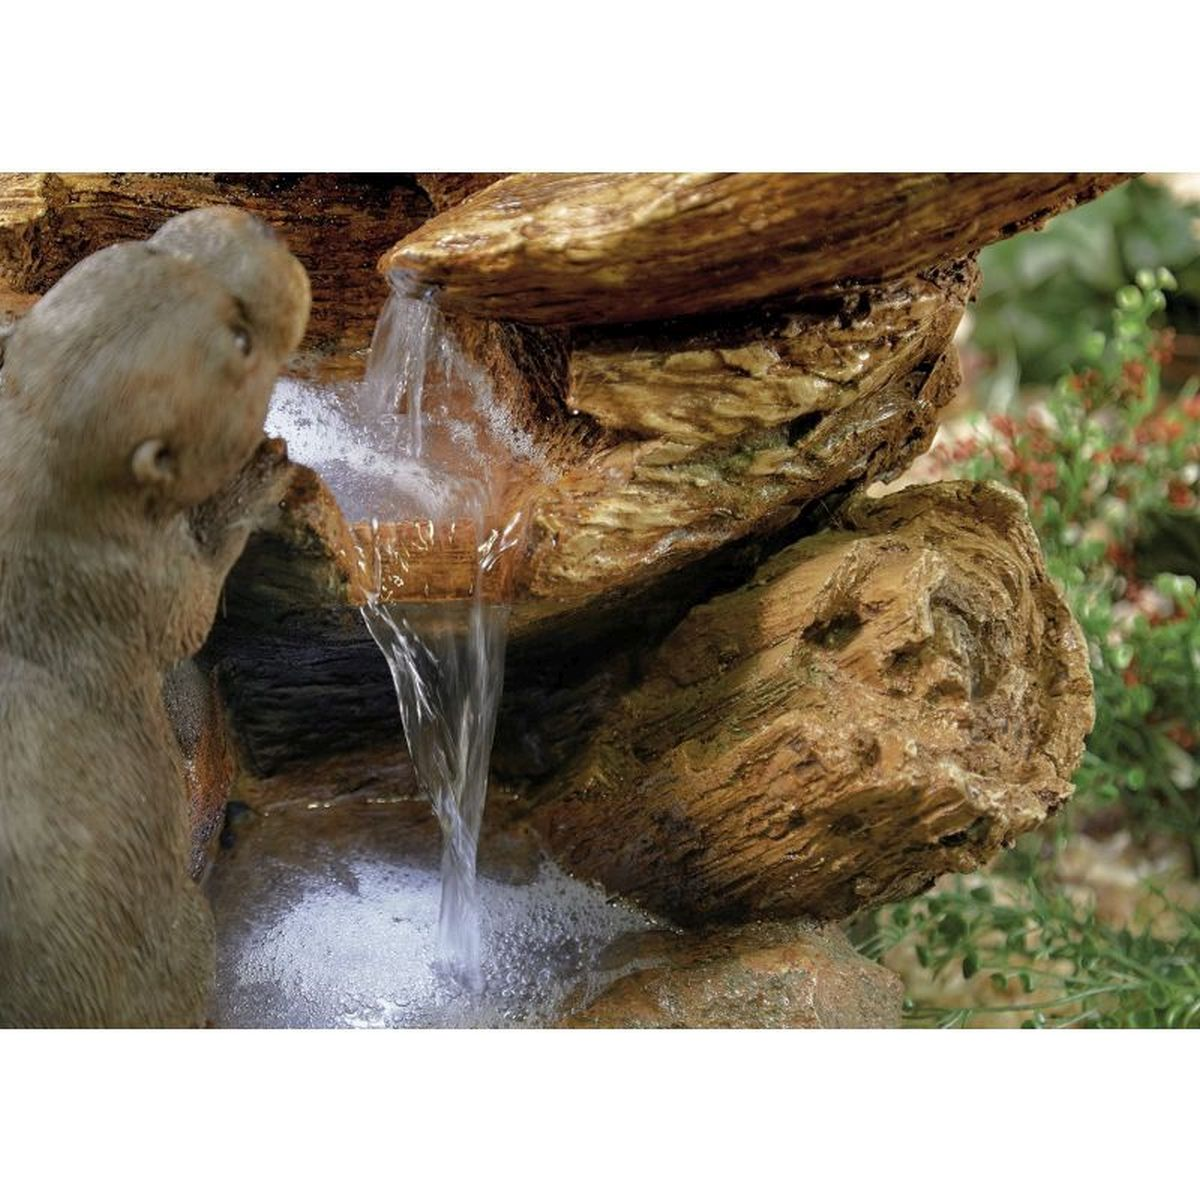 Otter Pools inc LEDs - Kelkay Water Feature